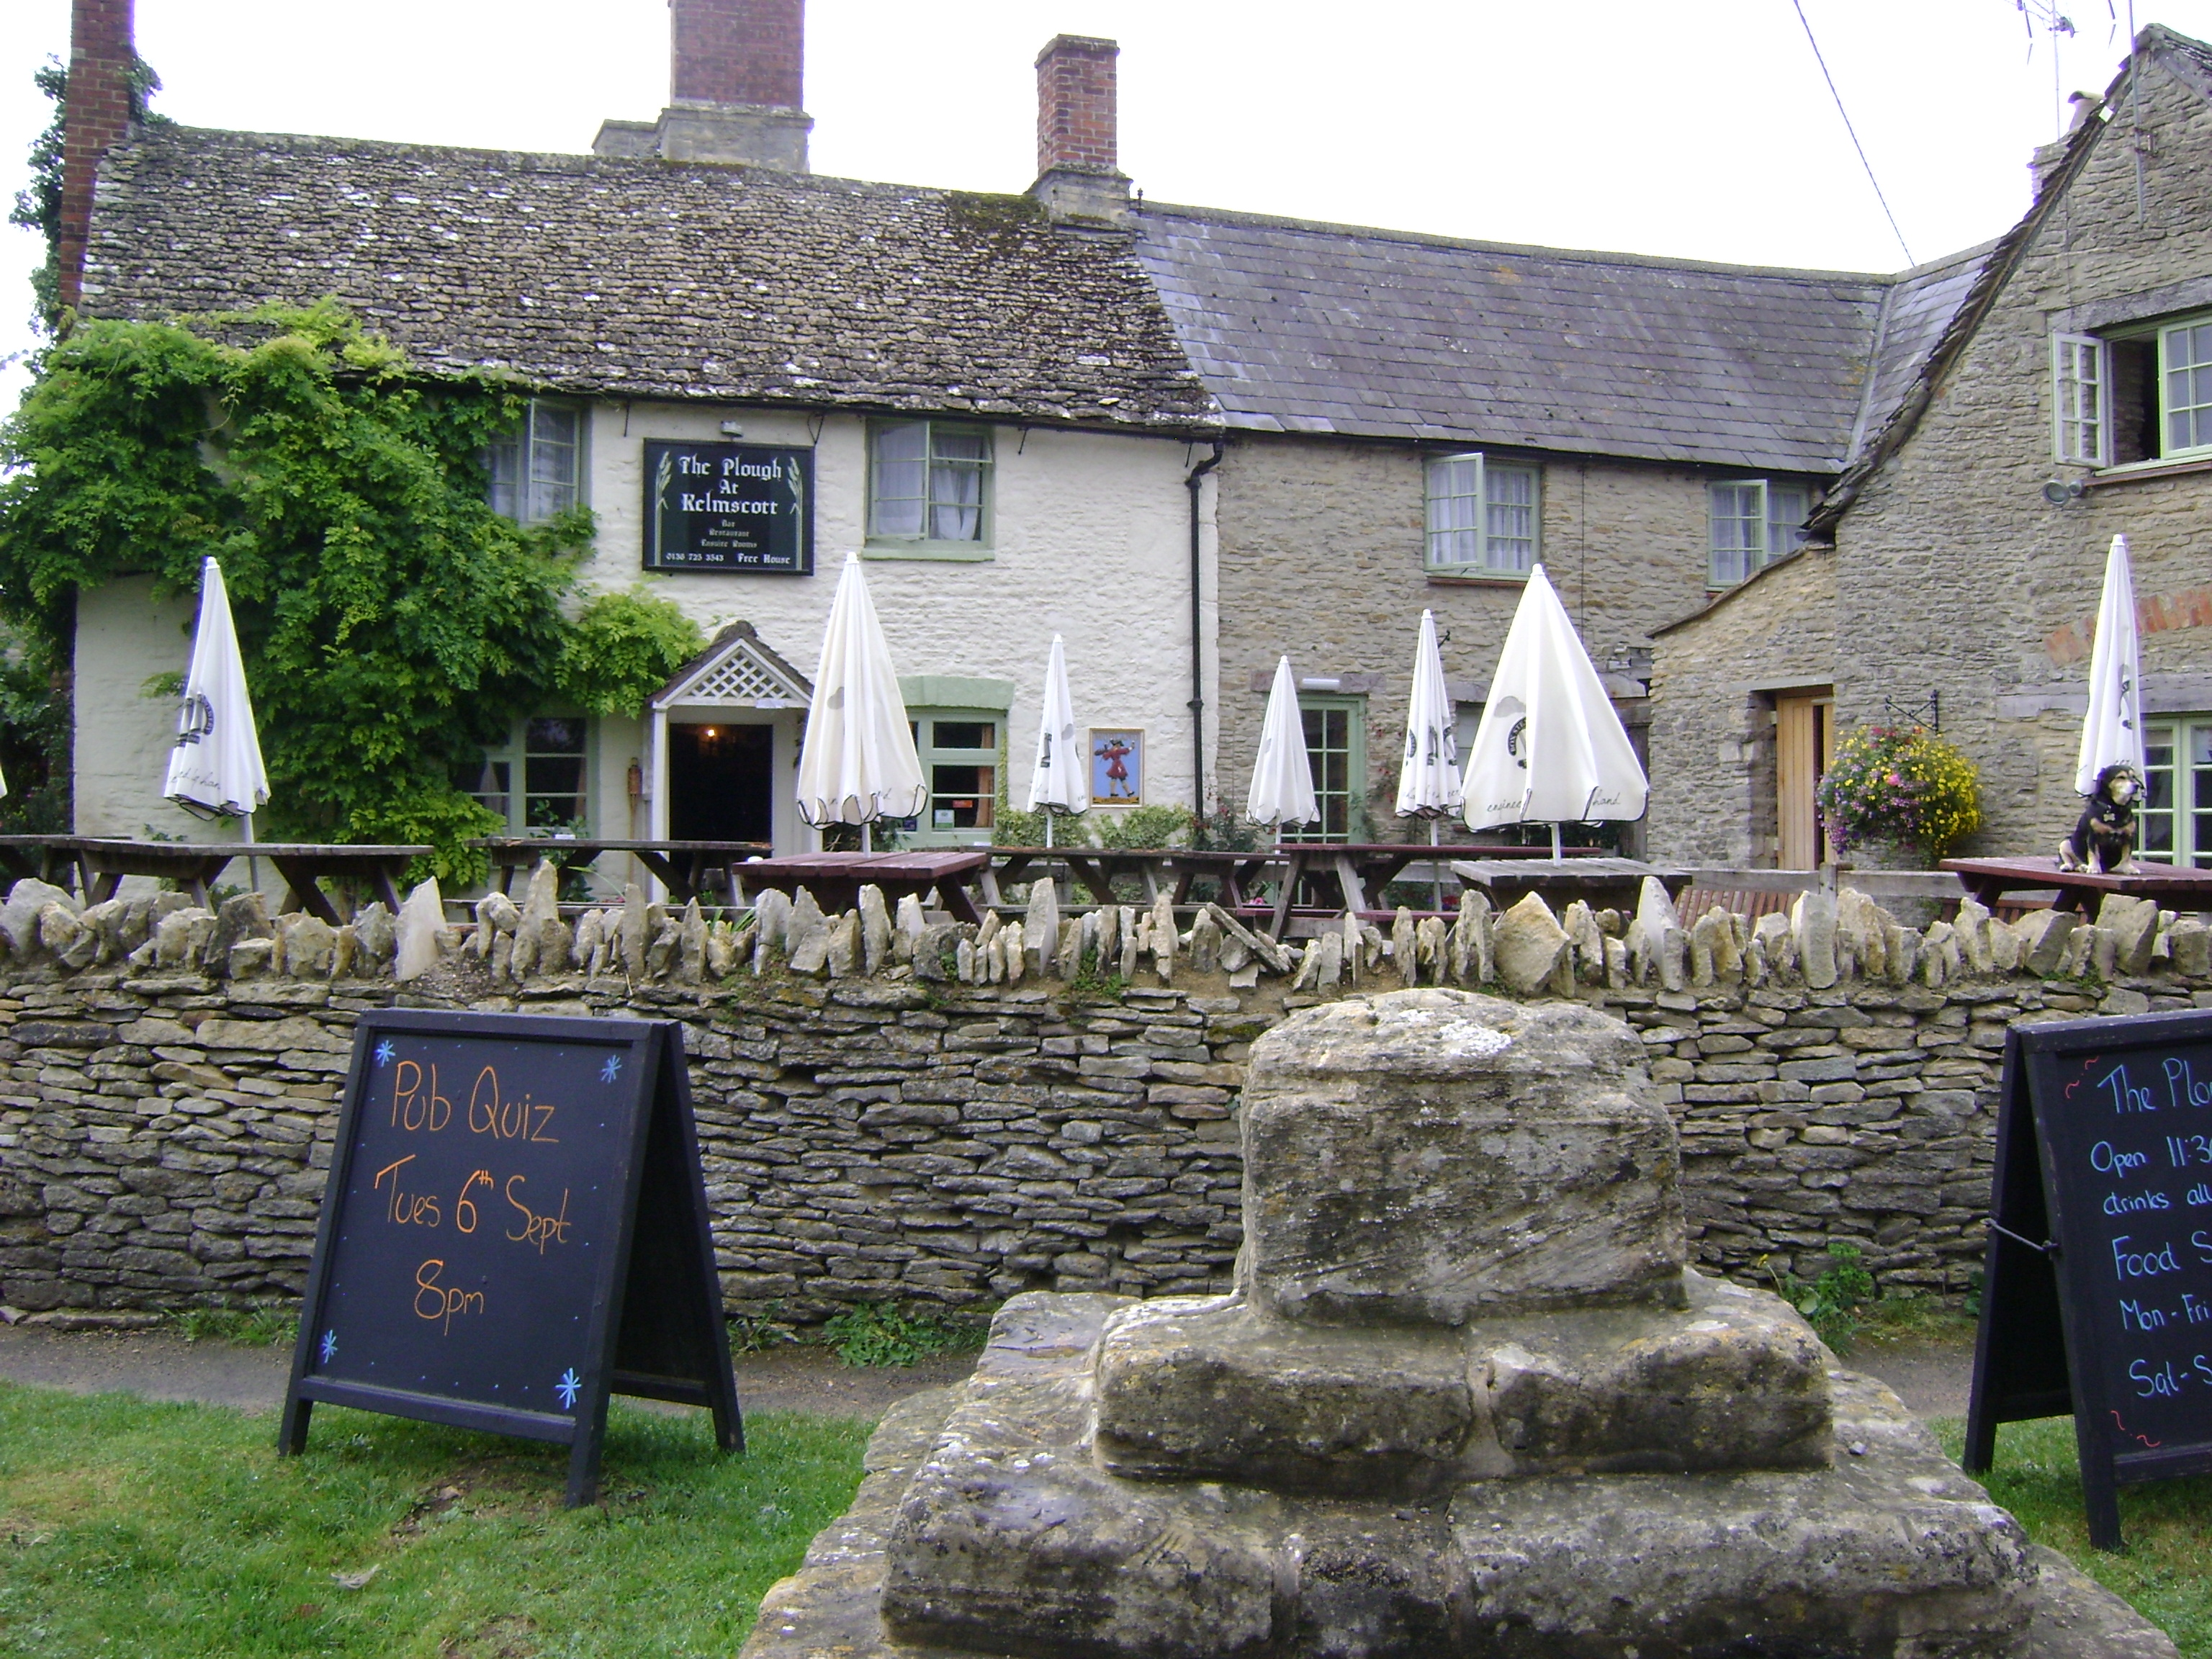 The Plough at Kelmscott